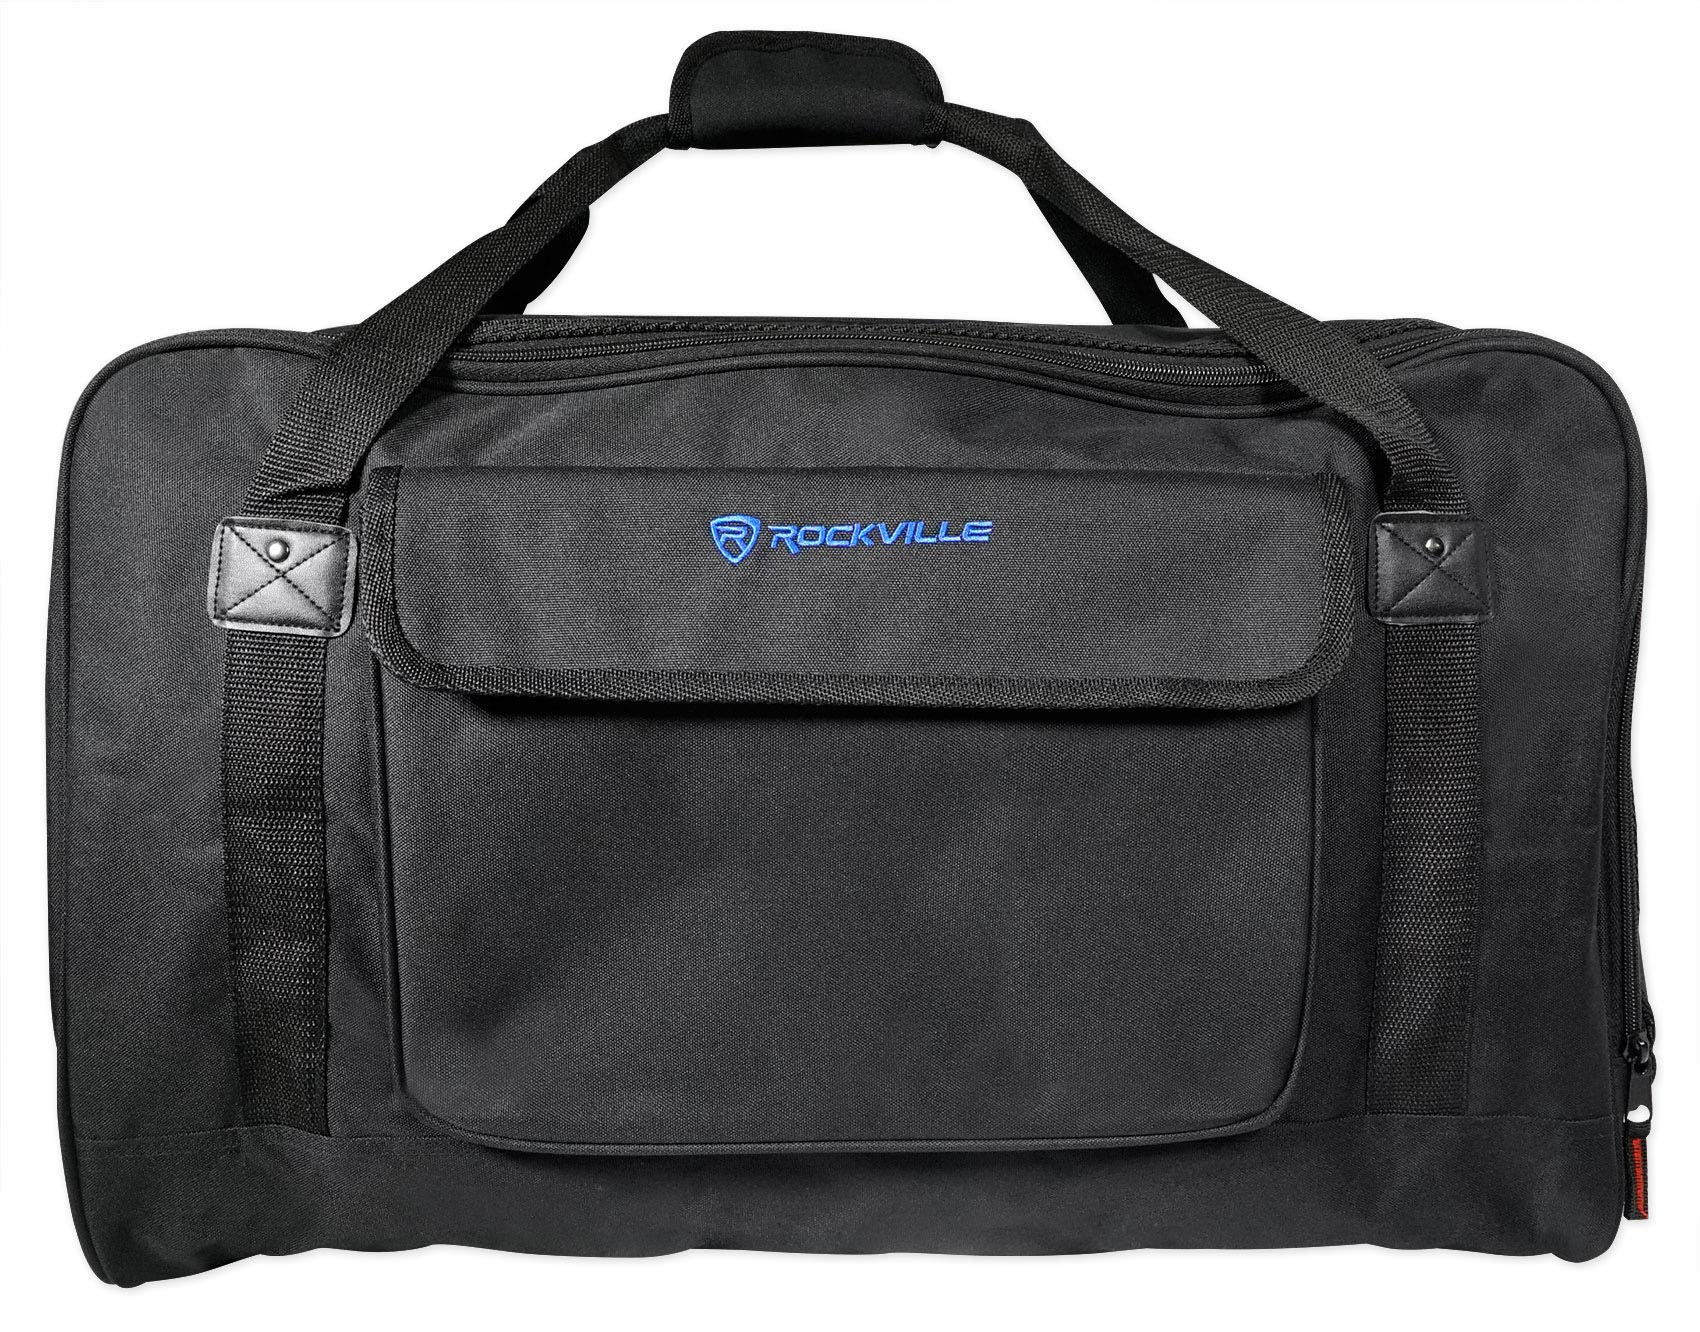 Rockville Rugged Speaker Bag Carry Case For Rockville RPG12BT 12'' Speaker